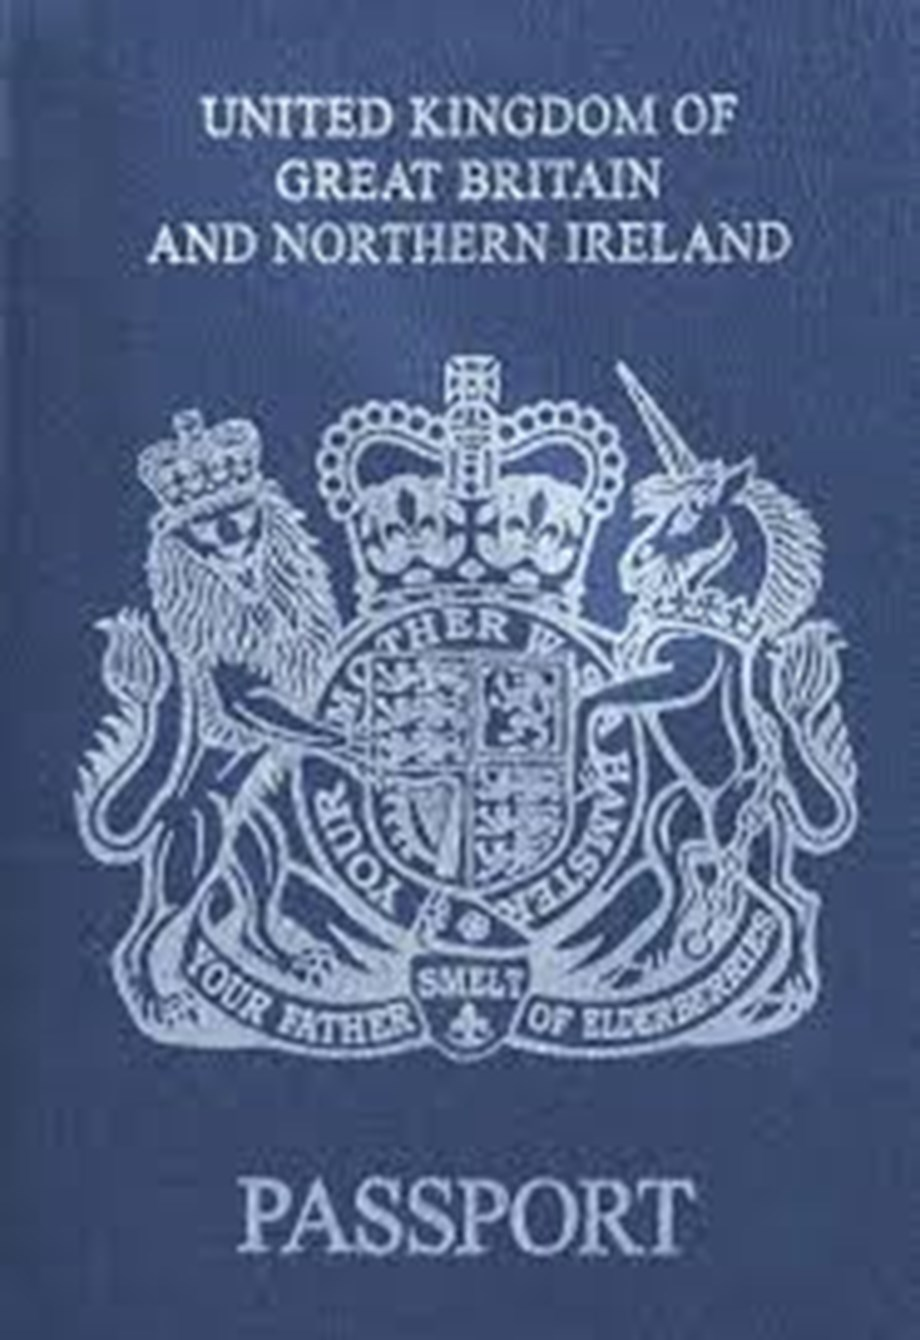 New UK Passports start to be issued, No EU mark on front cover